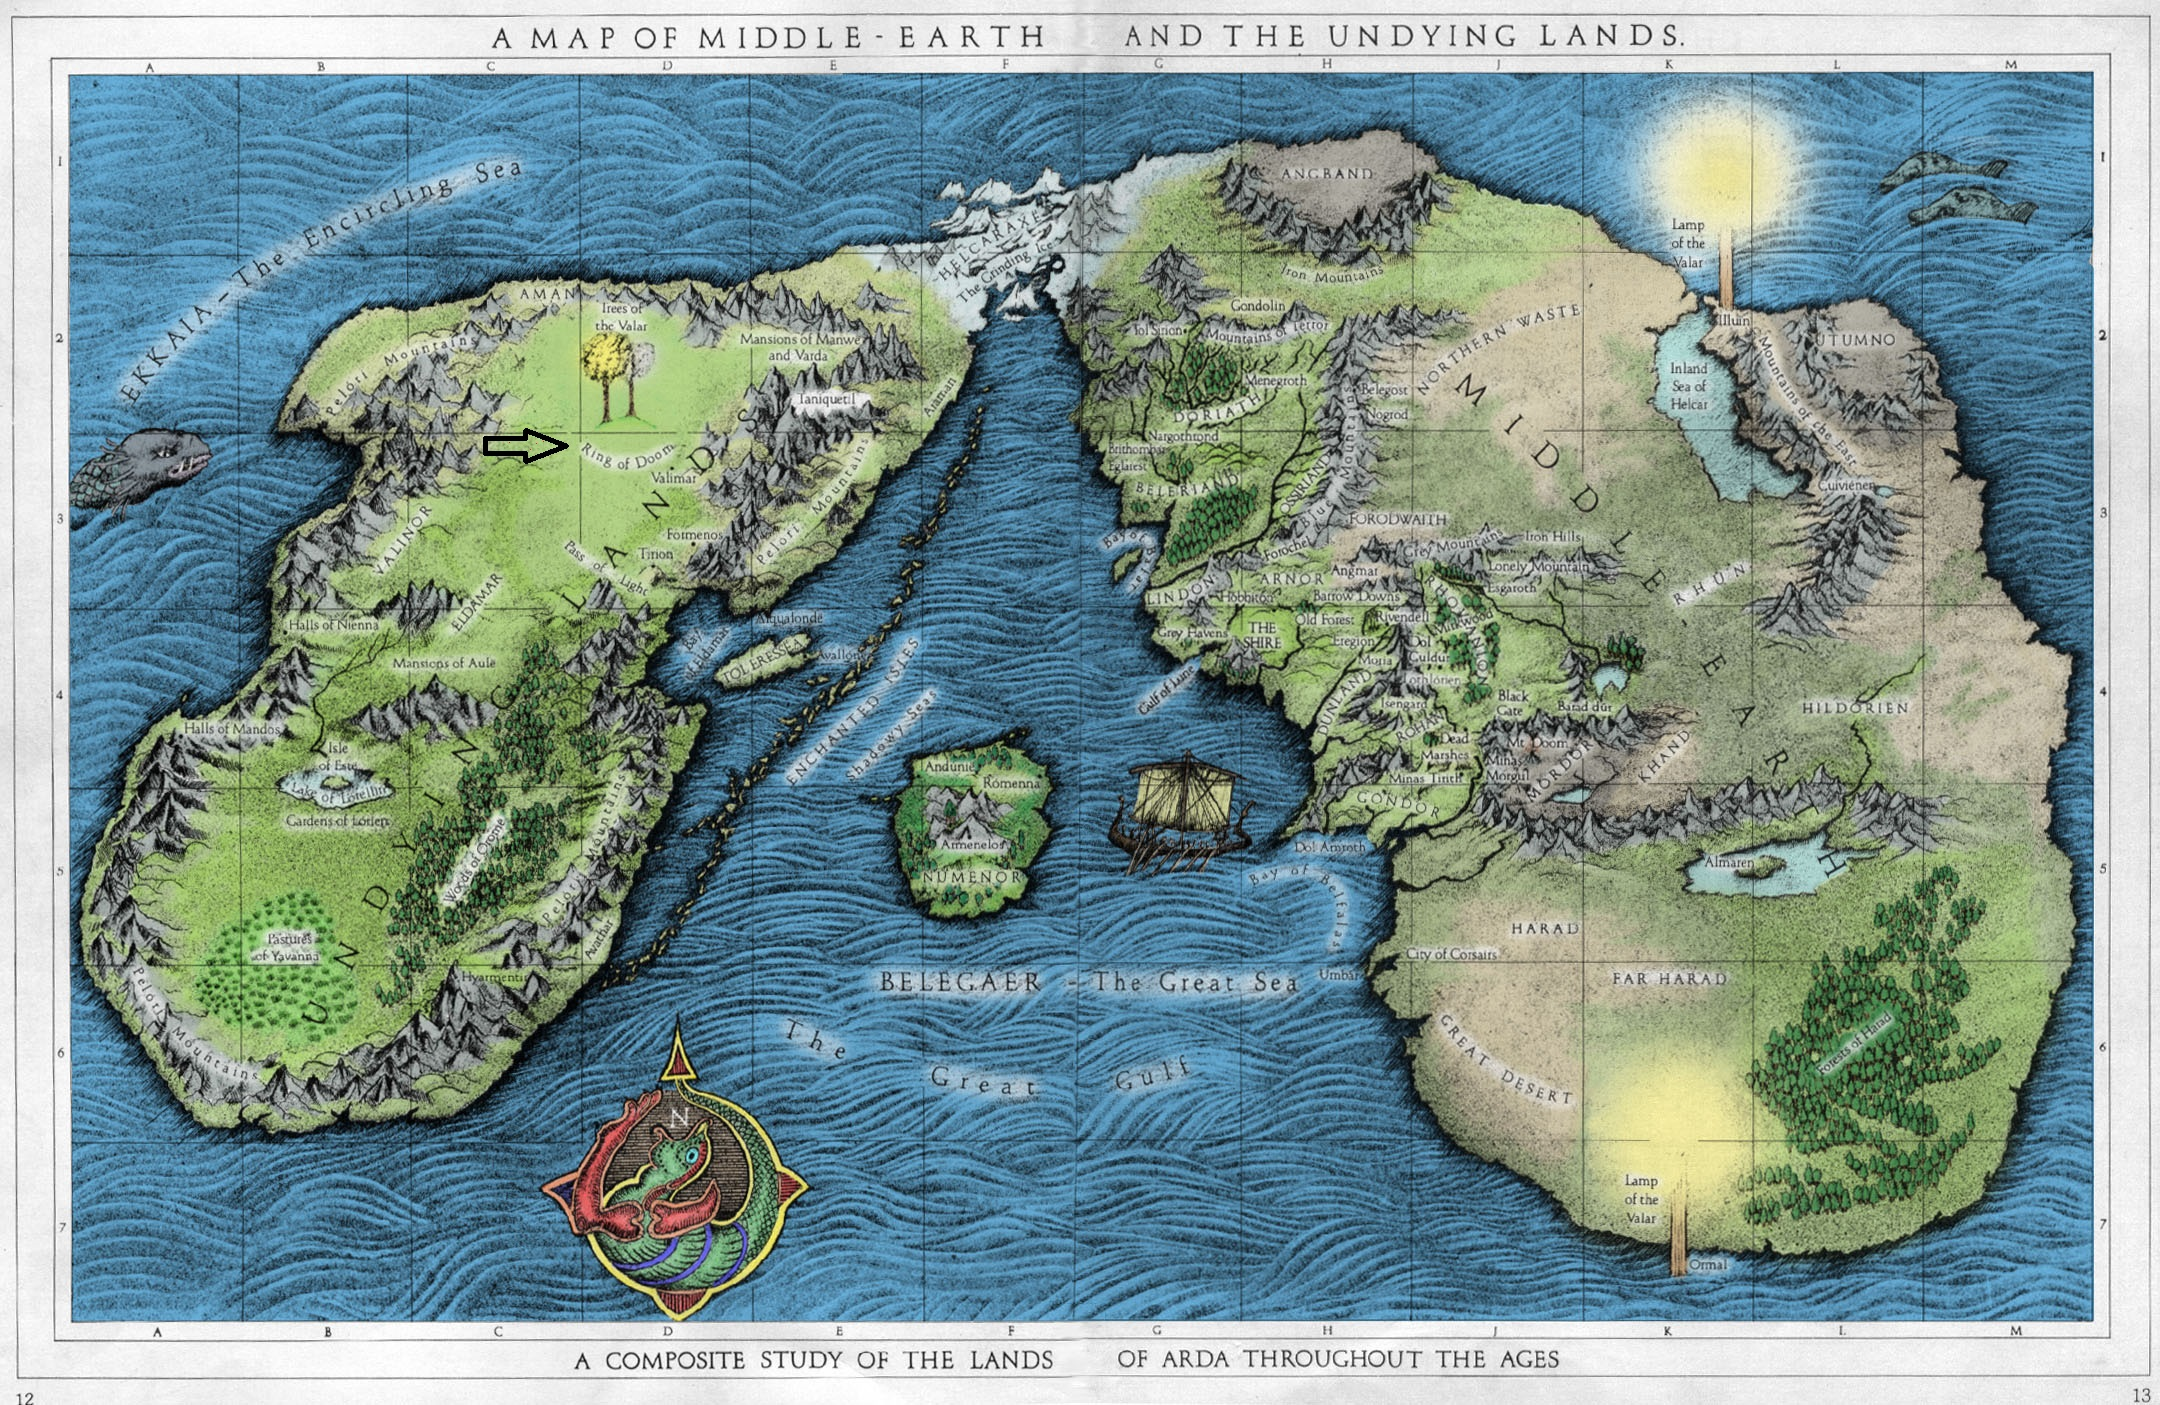 a map of middle earth and the undying lands colorjpg